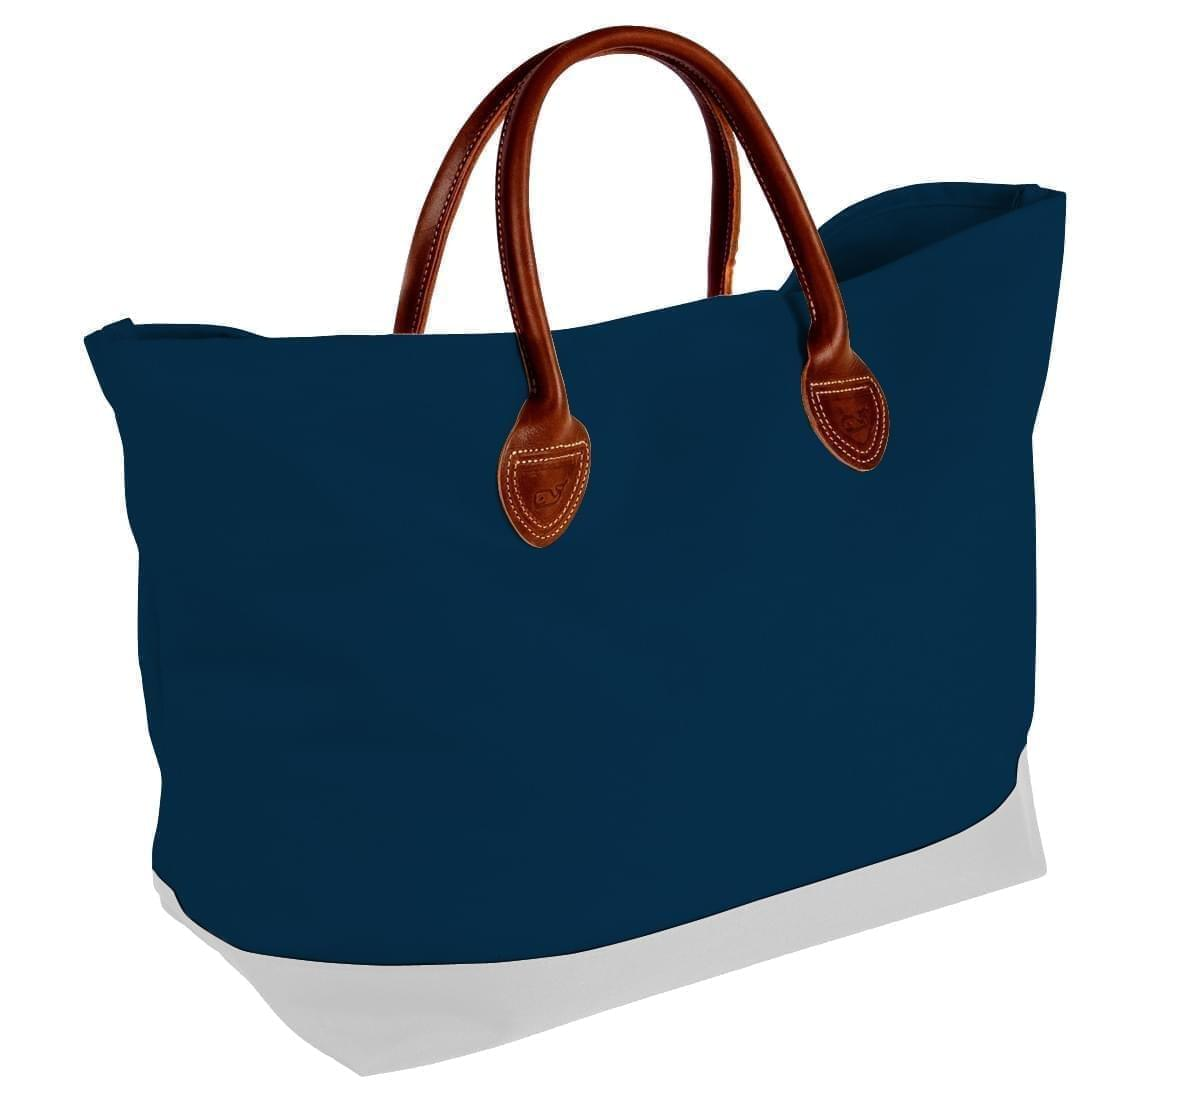 USA Made Canvas Leather Handle Totes, Navy-White, 10899-PC9